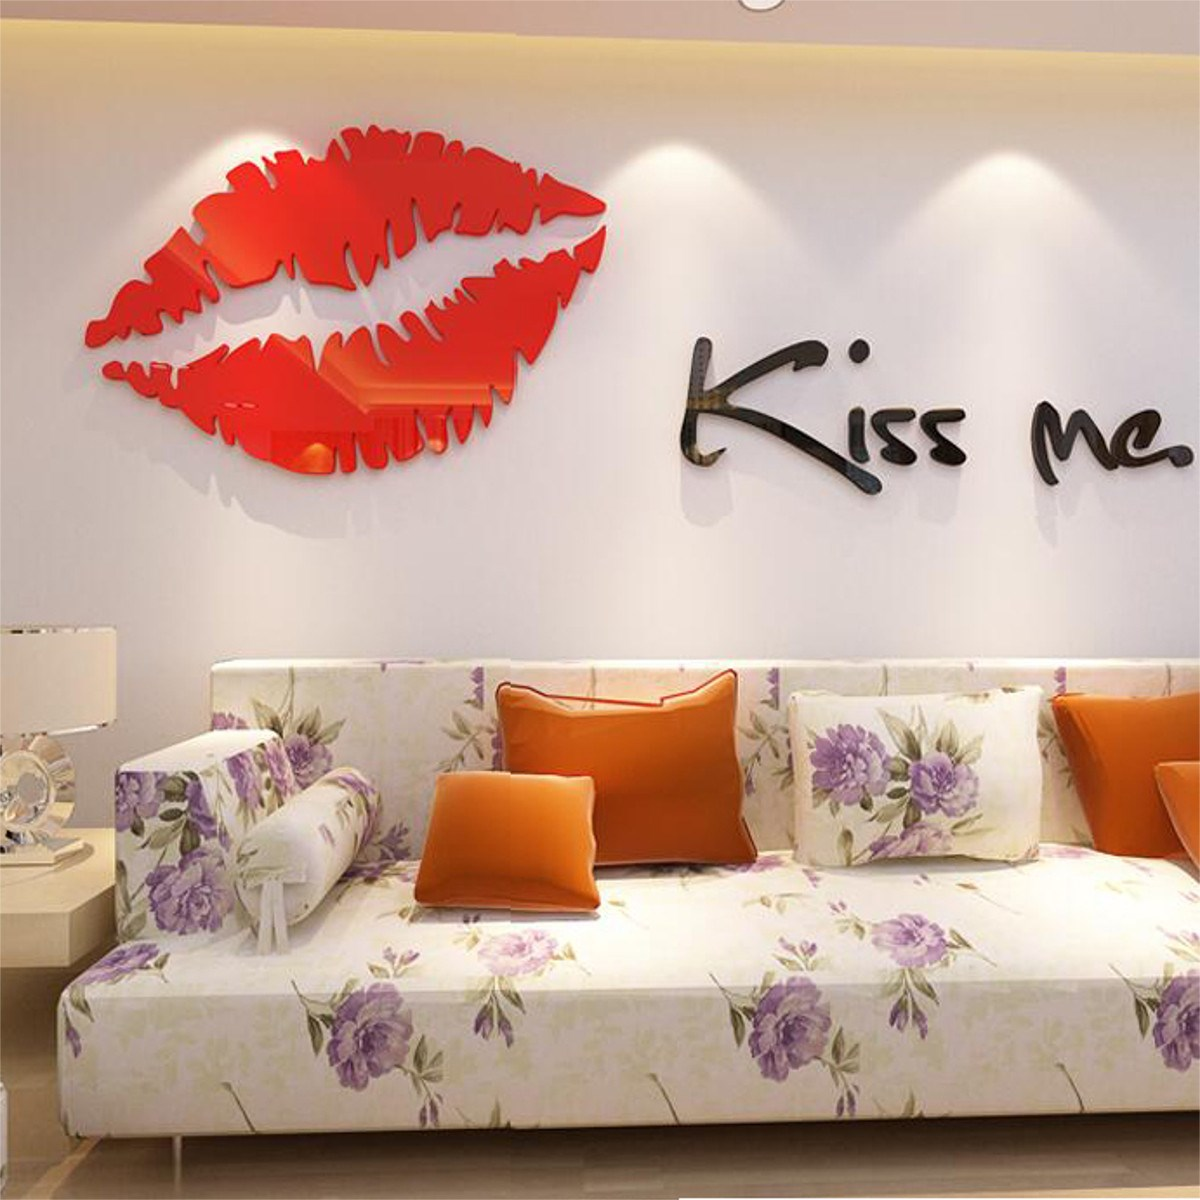 DIY 3D Acrylic Removable Kiss Me Wall Sticker Wall Decal Mural Art Home Living Room Bedroom Decorative Crafts Accessories(China (Mainland))